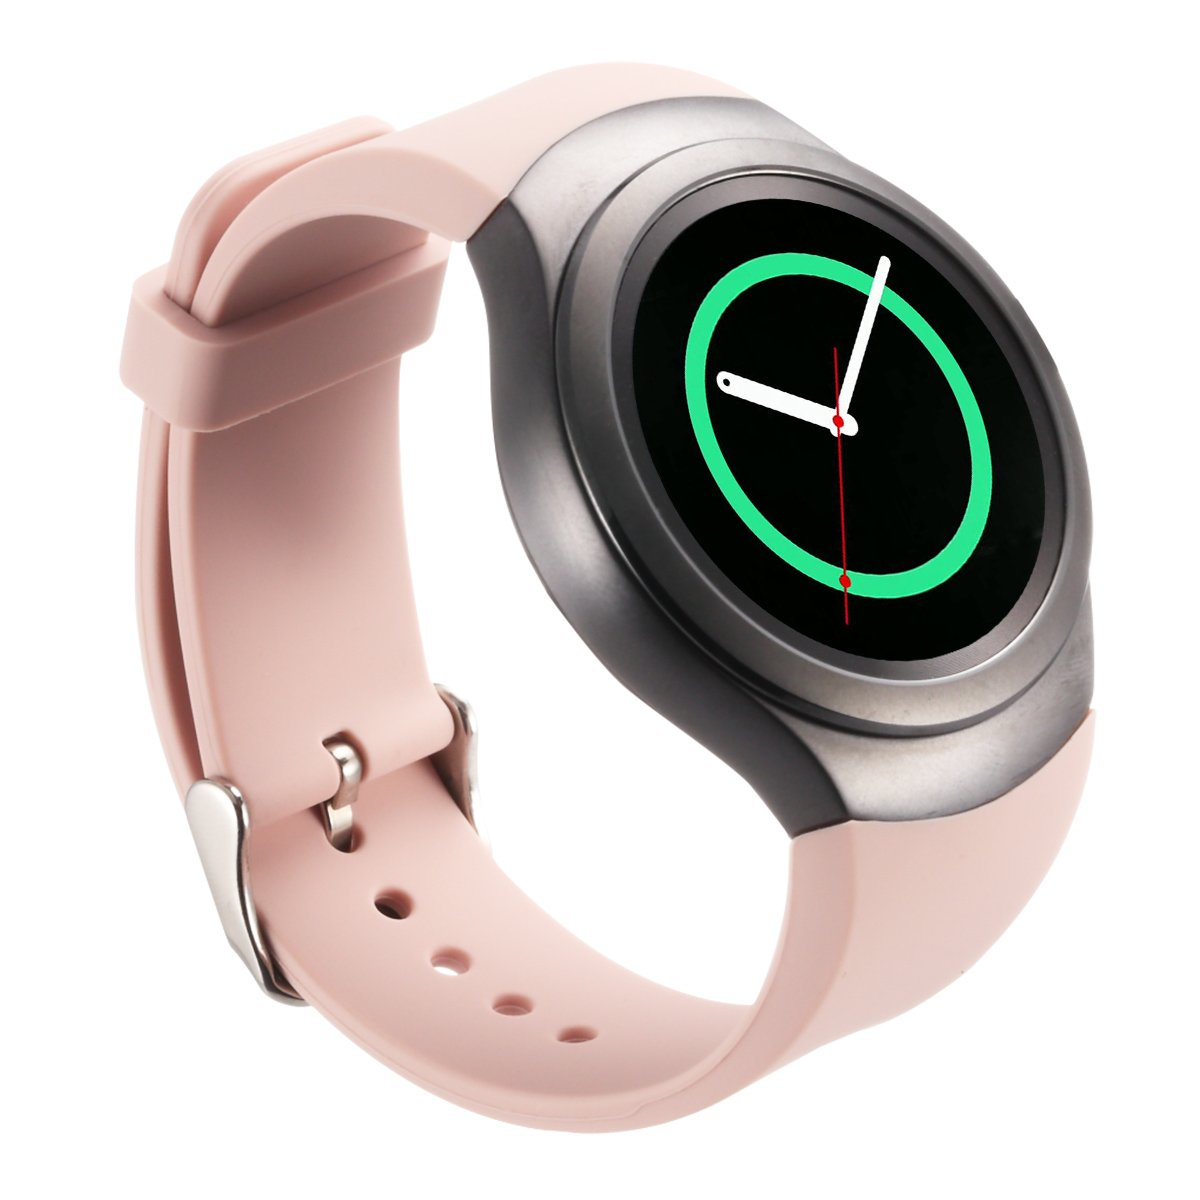 Amazon.com: Valkit for Gear S2 Bands - Silicone Smart Watch Band, Replacement Bracelet Wristband Strap for Samsung Gear S2, Soft Silicone Sport Style ...